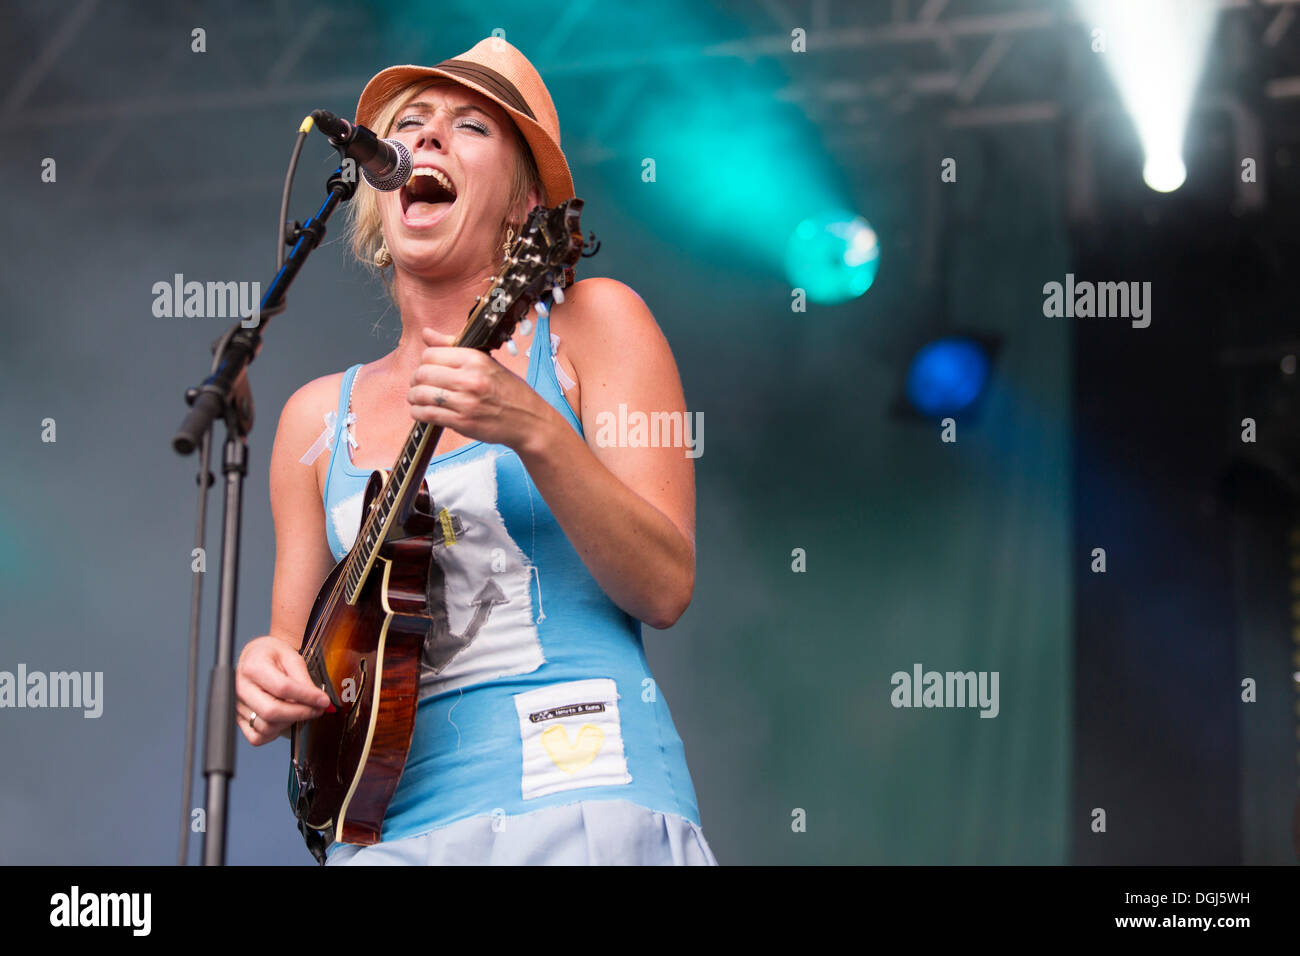 Turid Jørgensen with a mandolin from the Norwegian girl band Katzenjammer performing live at Heitere Open Air in Stock Photo